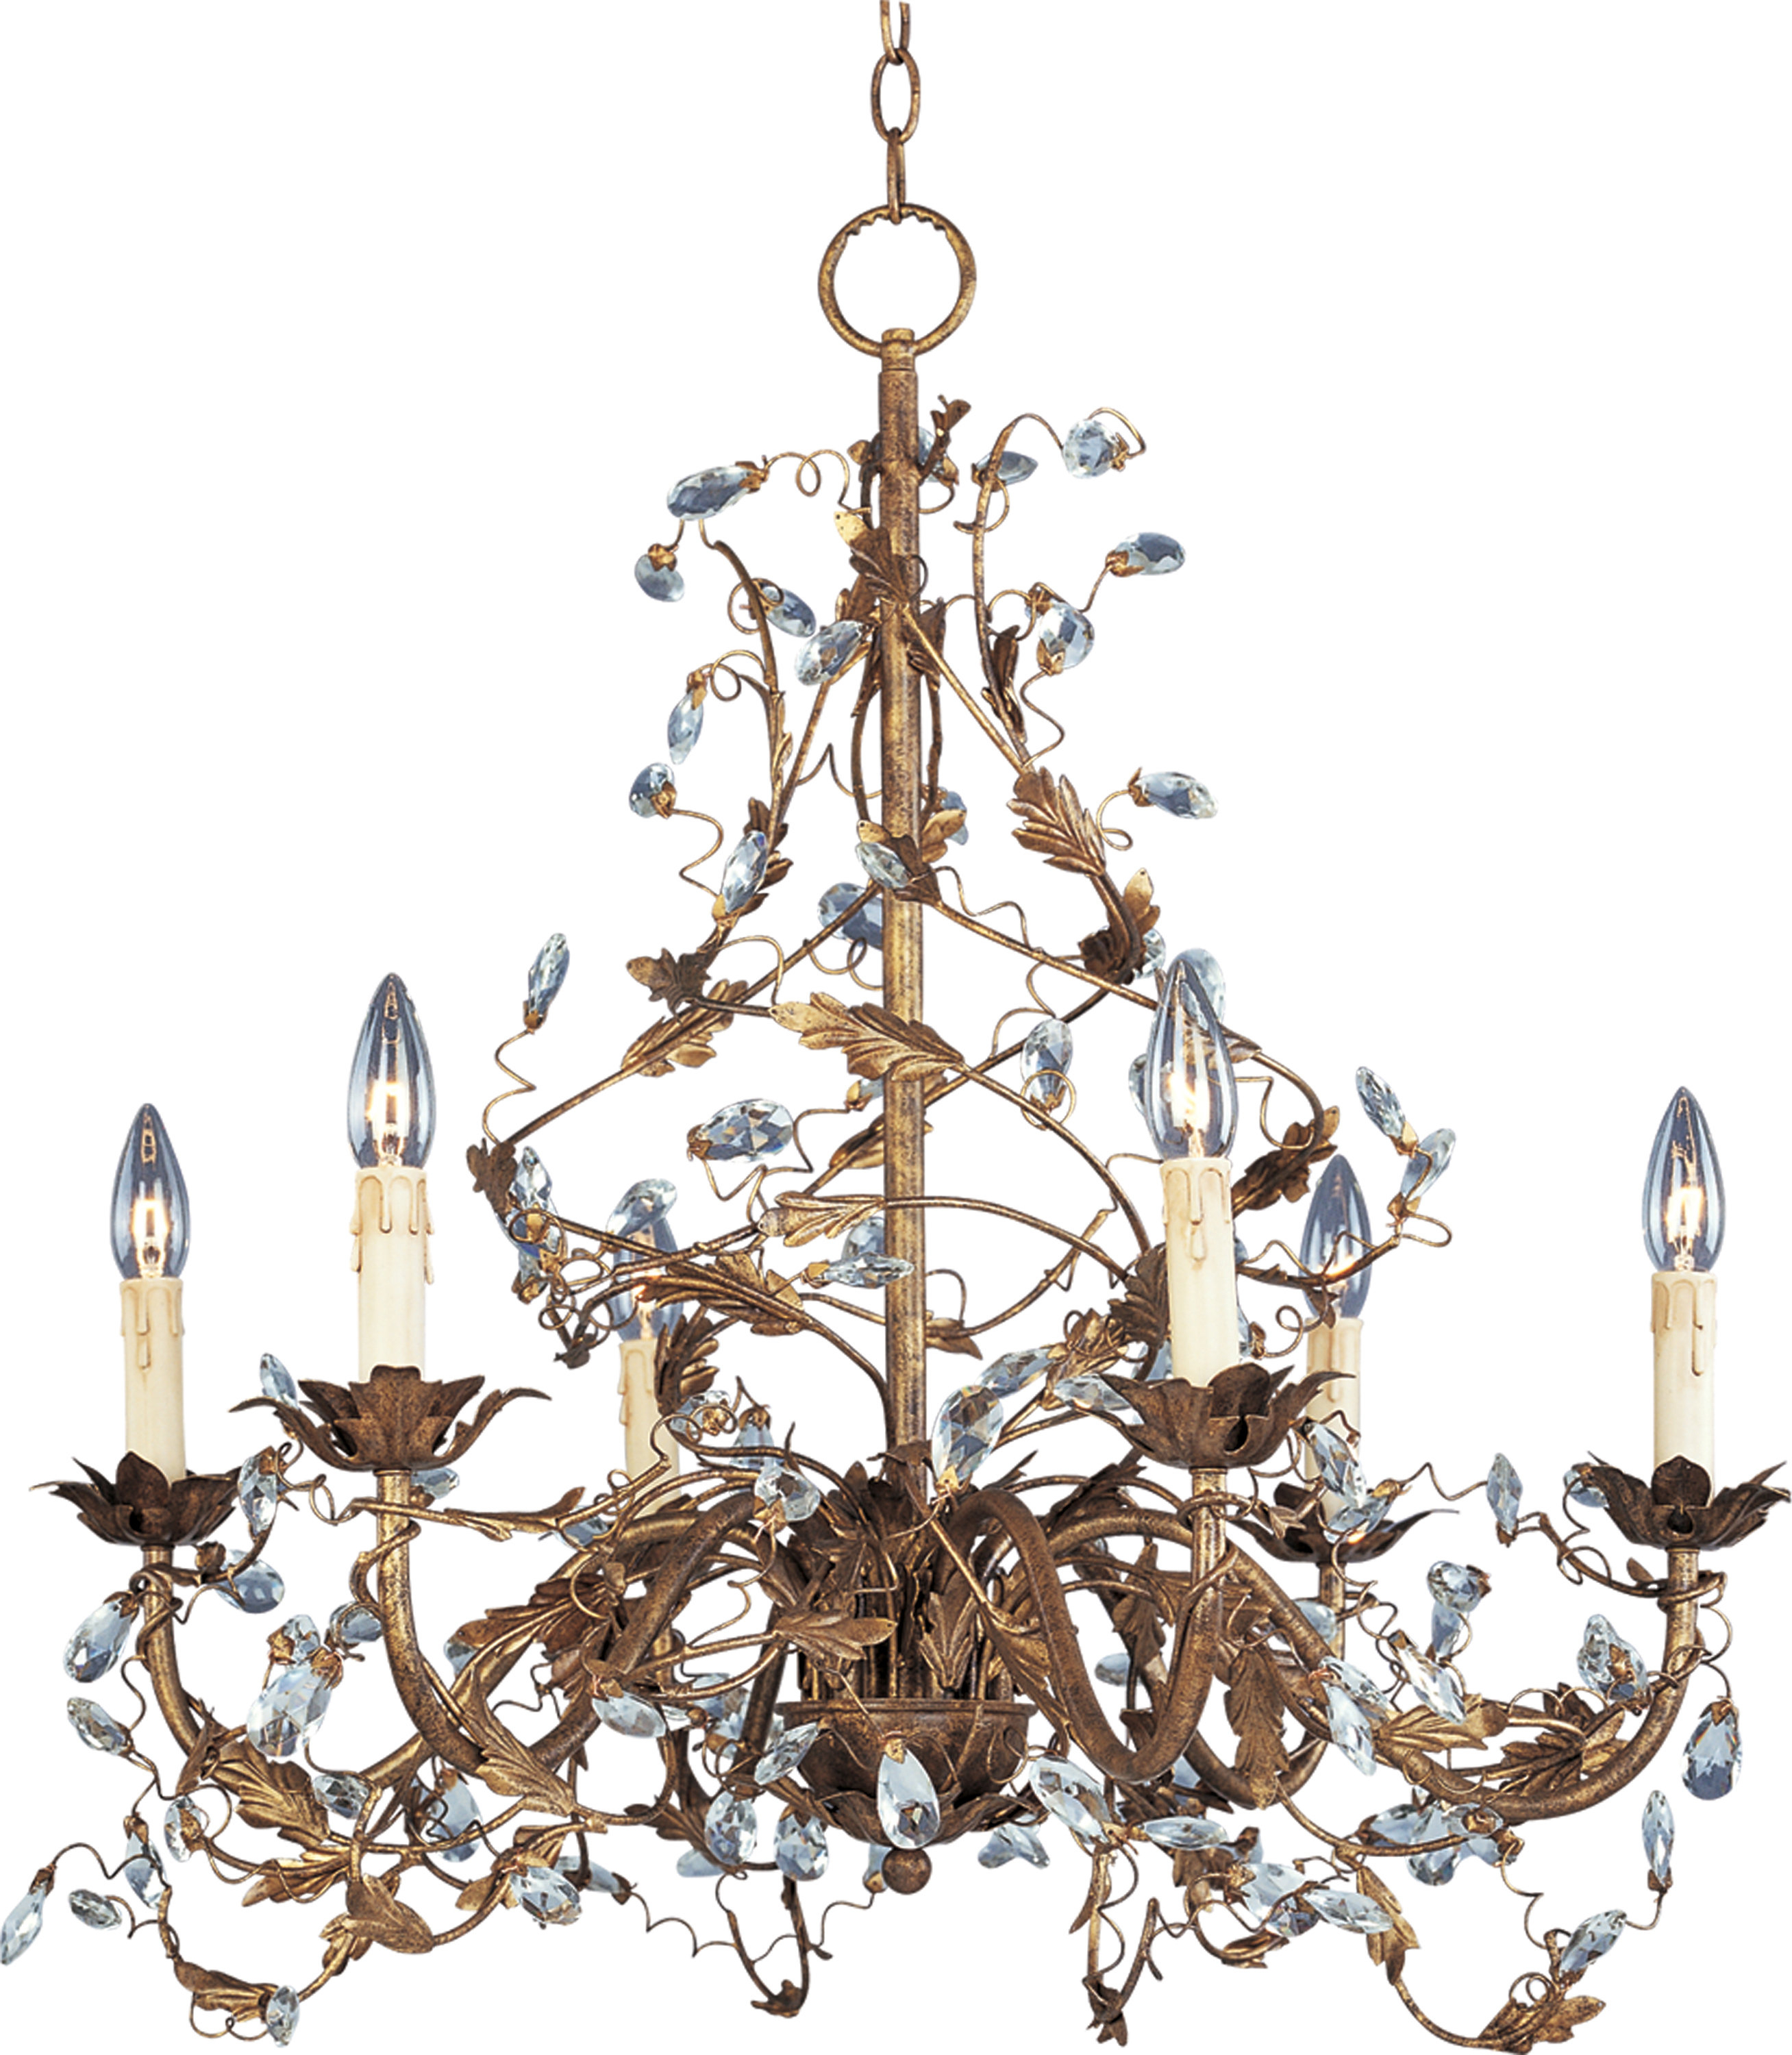 Hesse 5 Light Candle Style Chandeliers With Regard To Latest Kaiya 6 Light Candle Style Chandelier (View 23 of 25)